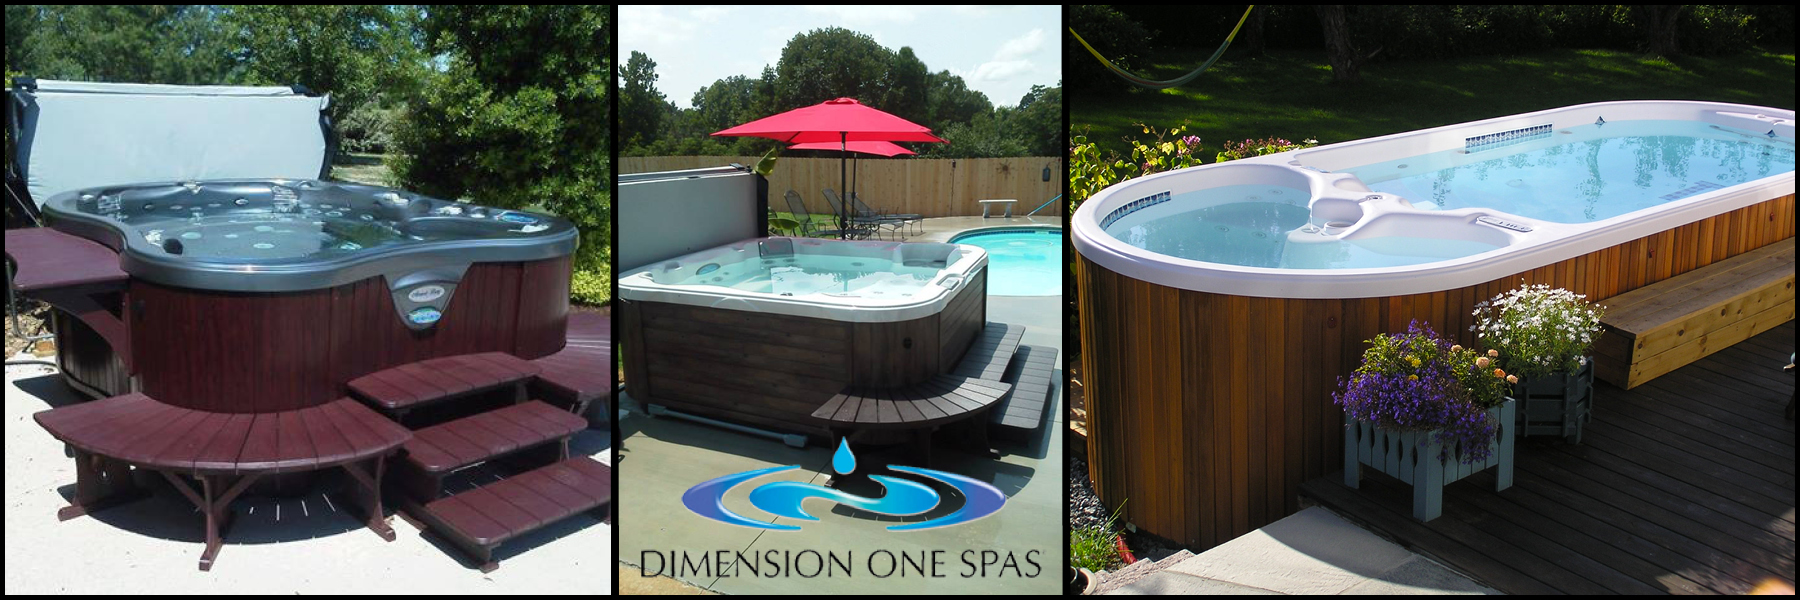 Lighthouse spas pools dimension one spa for Dimension one spas